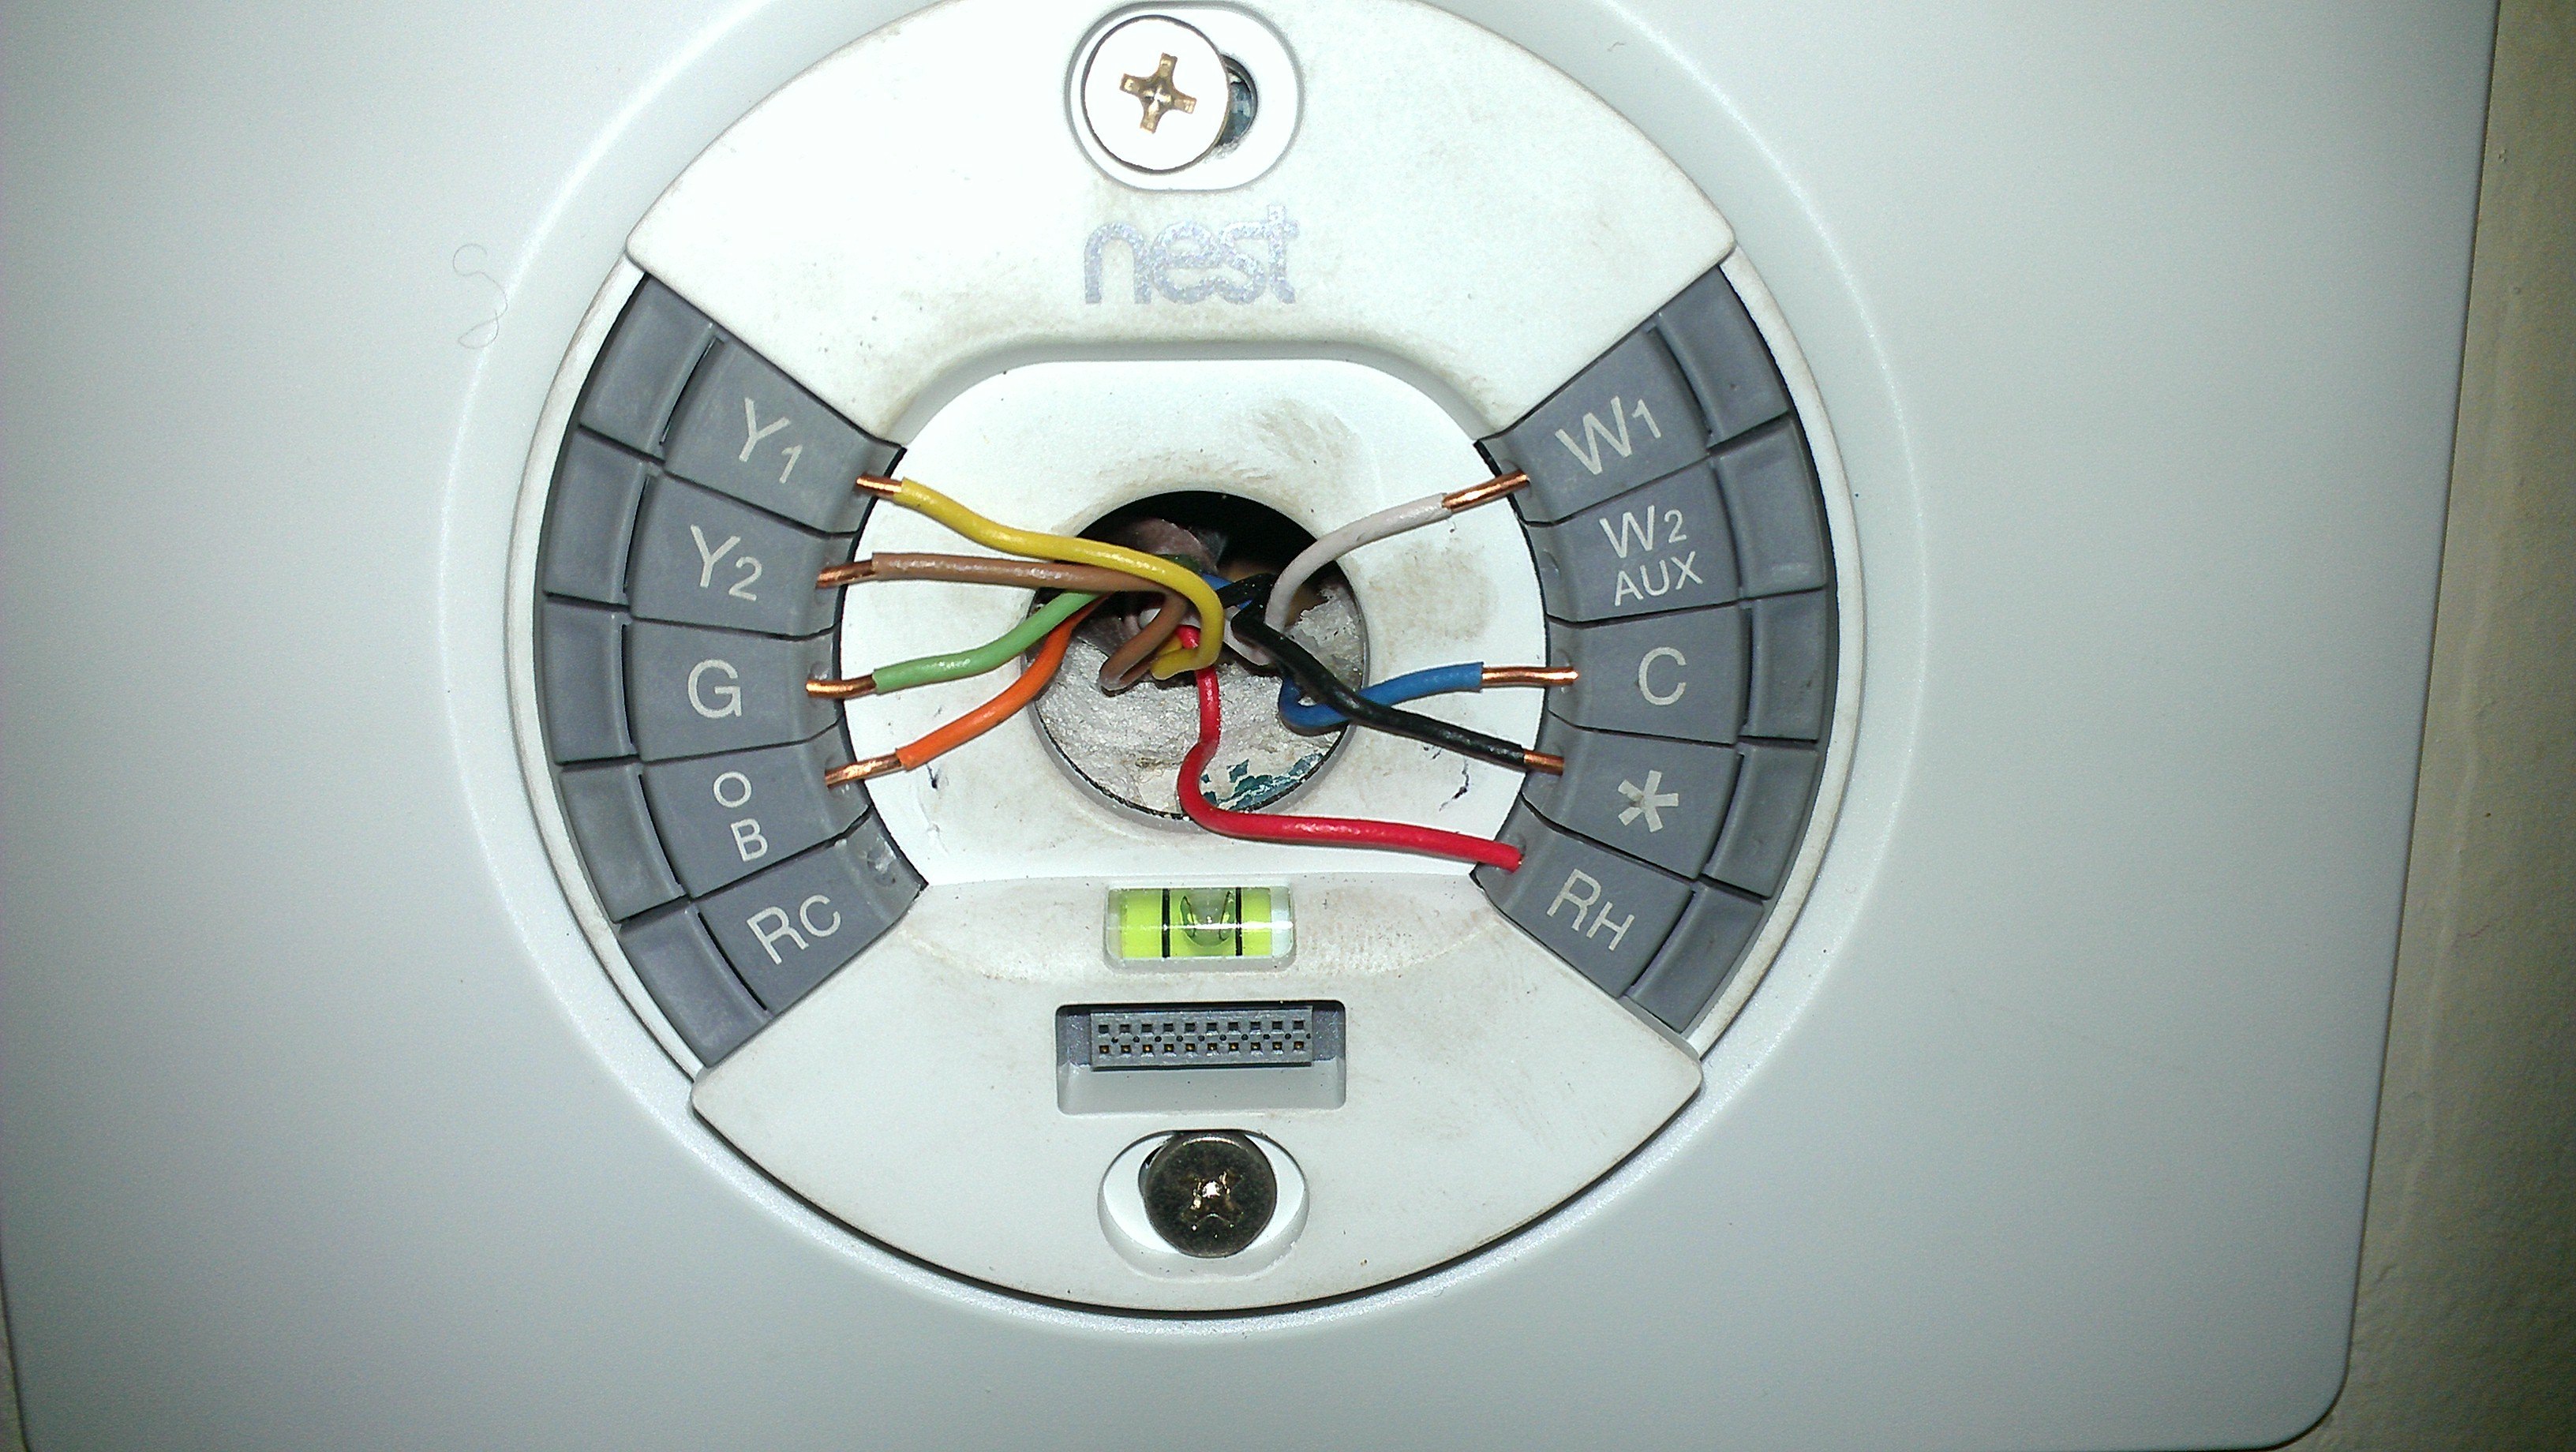 Nest Dual Fuel Wiring Diagram | Wiring Diagram - Wiring Diagram For A Nest Dual Fuel Heat Pump